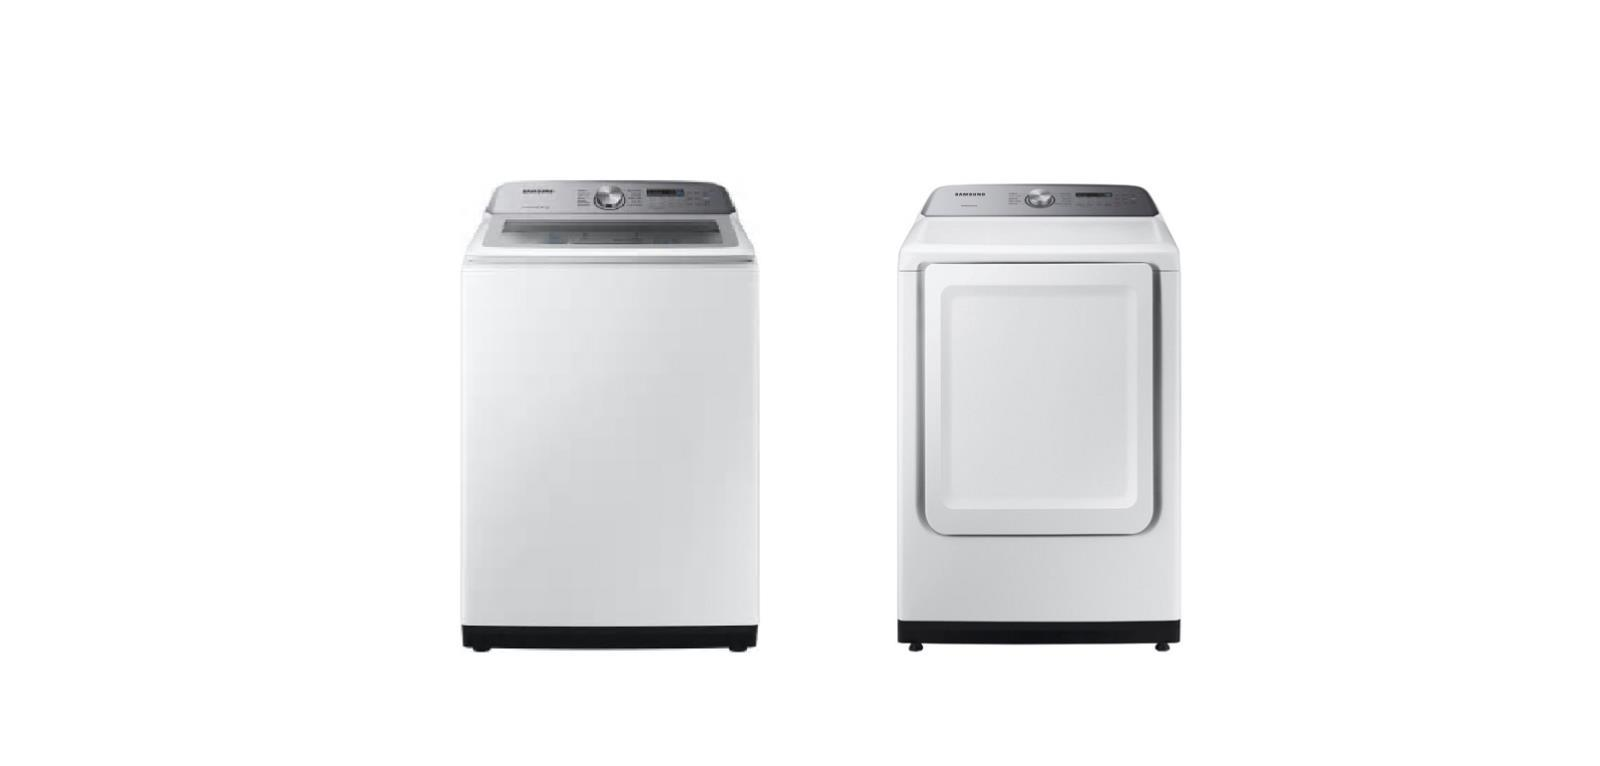 "Samsung WA50R5200AW 27"" Top Load Washer & DVE50R5200W 27"" Electric Dryer Combo - ALSurplus AL"